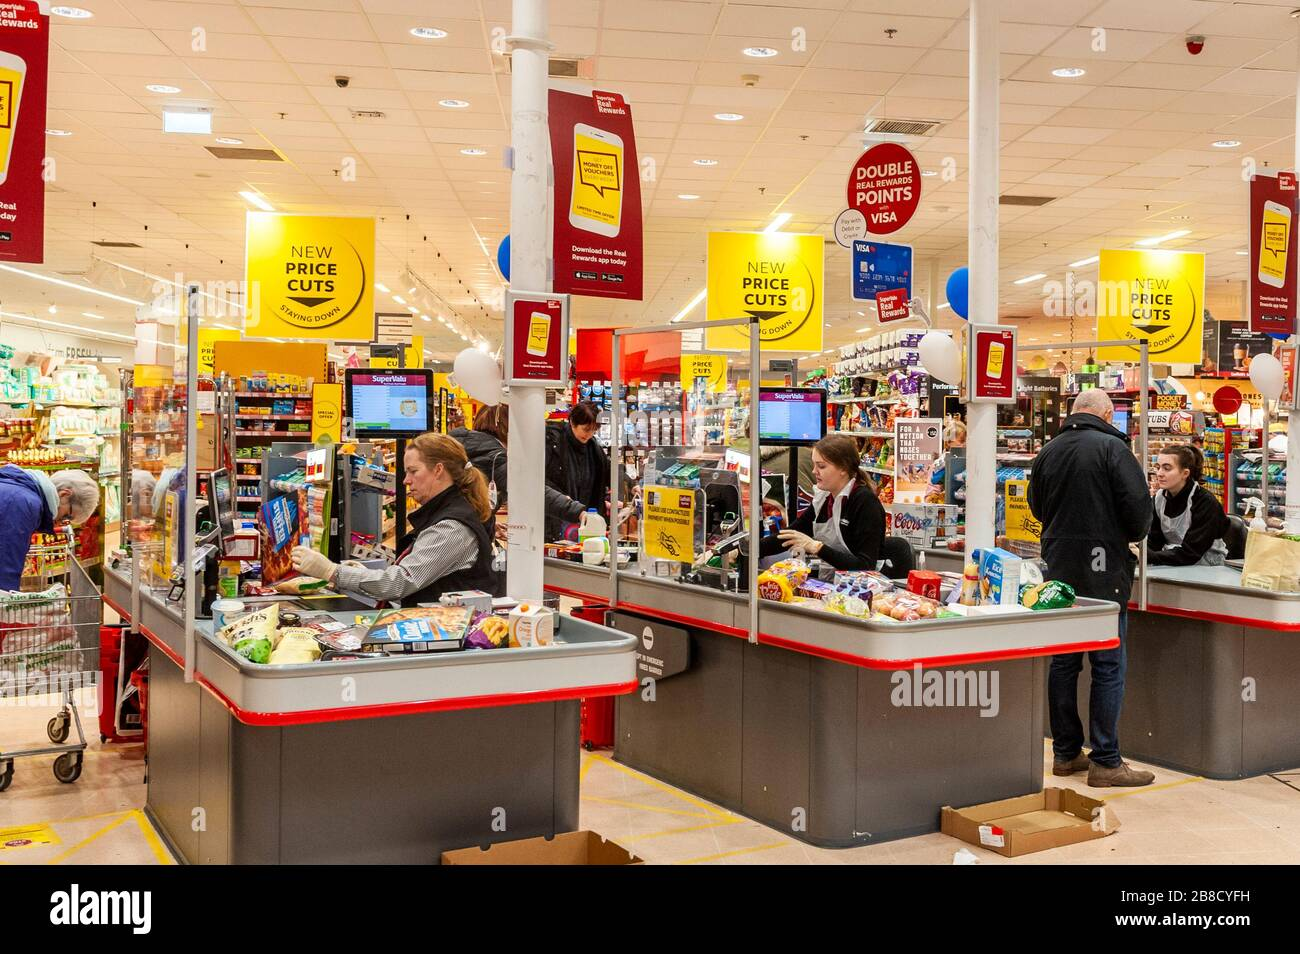 bandon-west-cork-ireland-21st-mar-2020-supervalu-has-installed-plastic-protective-screens-at-its-checkouts-to-follow-the-governments-social-distancing-guidelines-due-to-the-covid-19-virus-the-screens-are-designed-to-protect-checkout-staff-who-have-also-been-issued-with-disposable-aprons-credit-andy-gibsonalamy-live-news-2B8CYFH.jpg